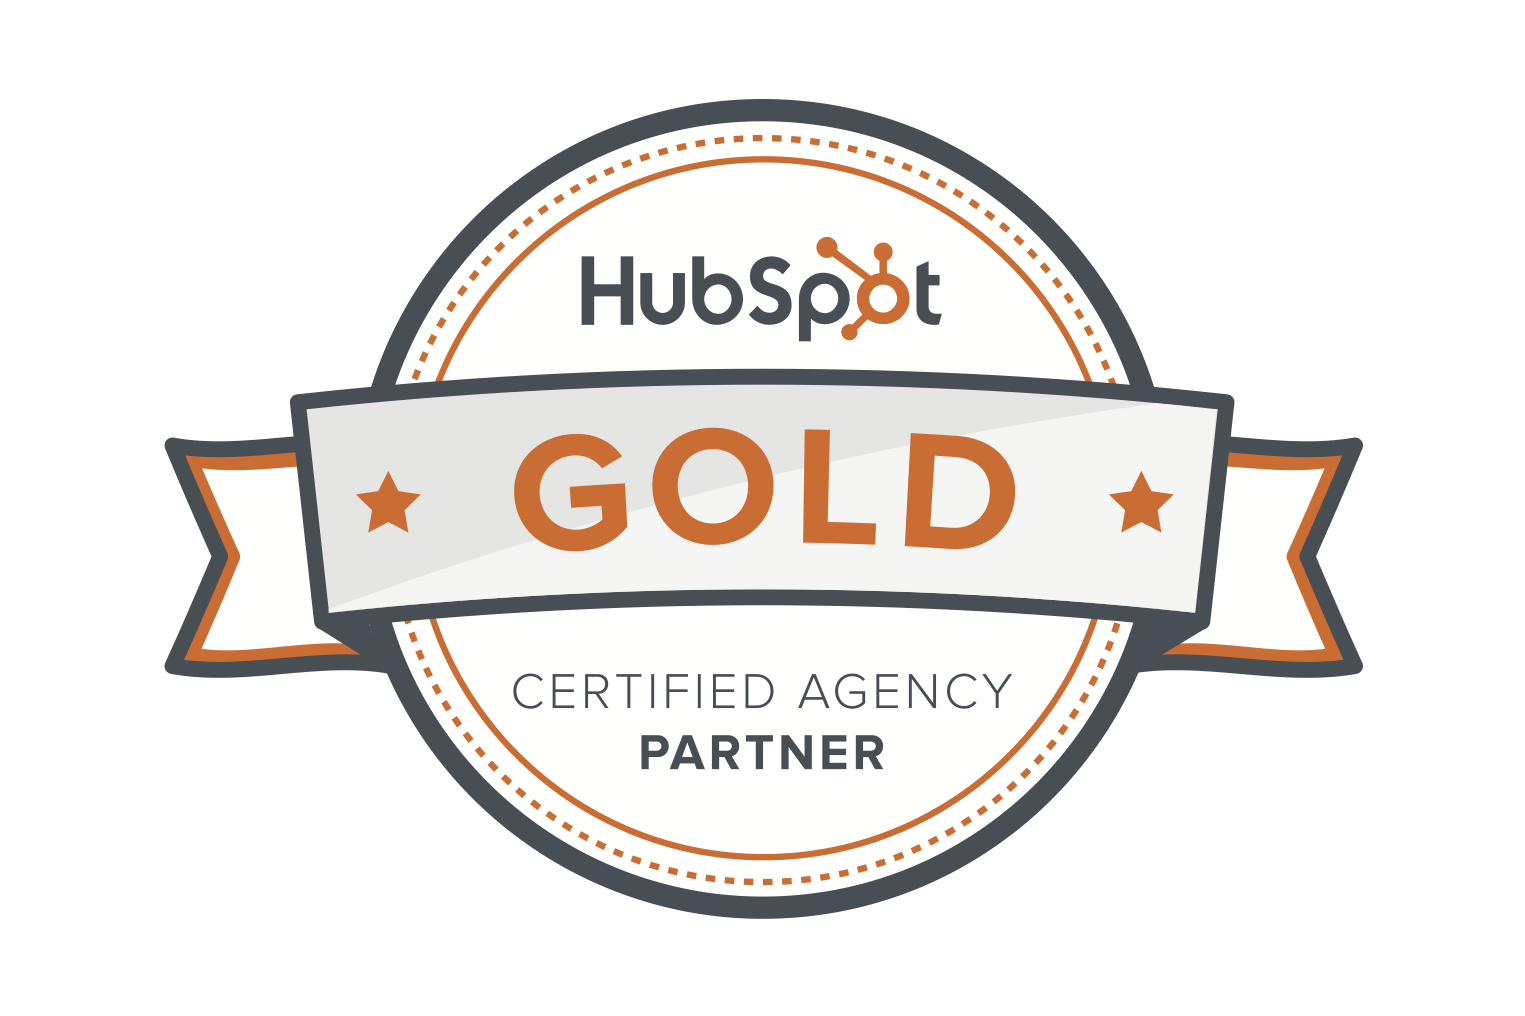 HubSpot's certificate for becoming a Gold certified agency partner